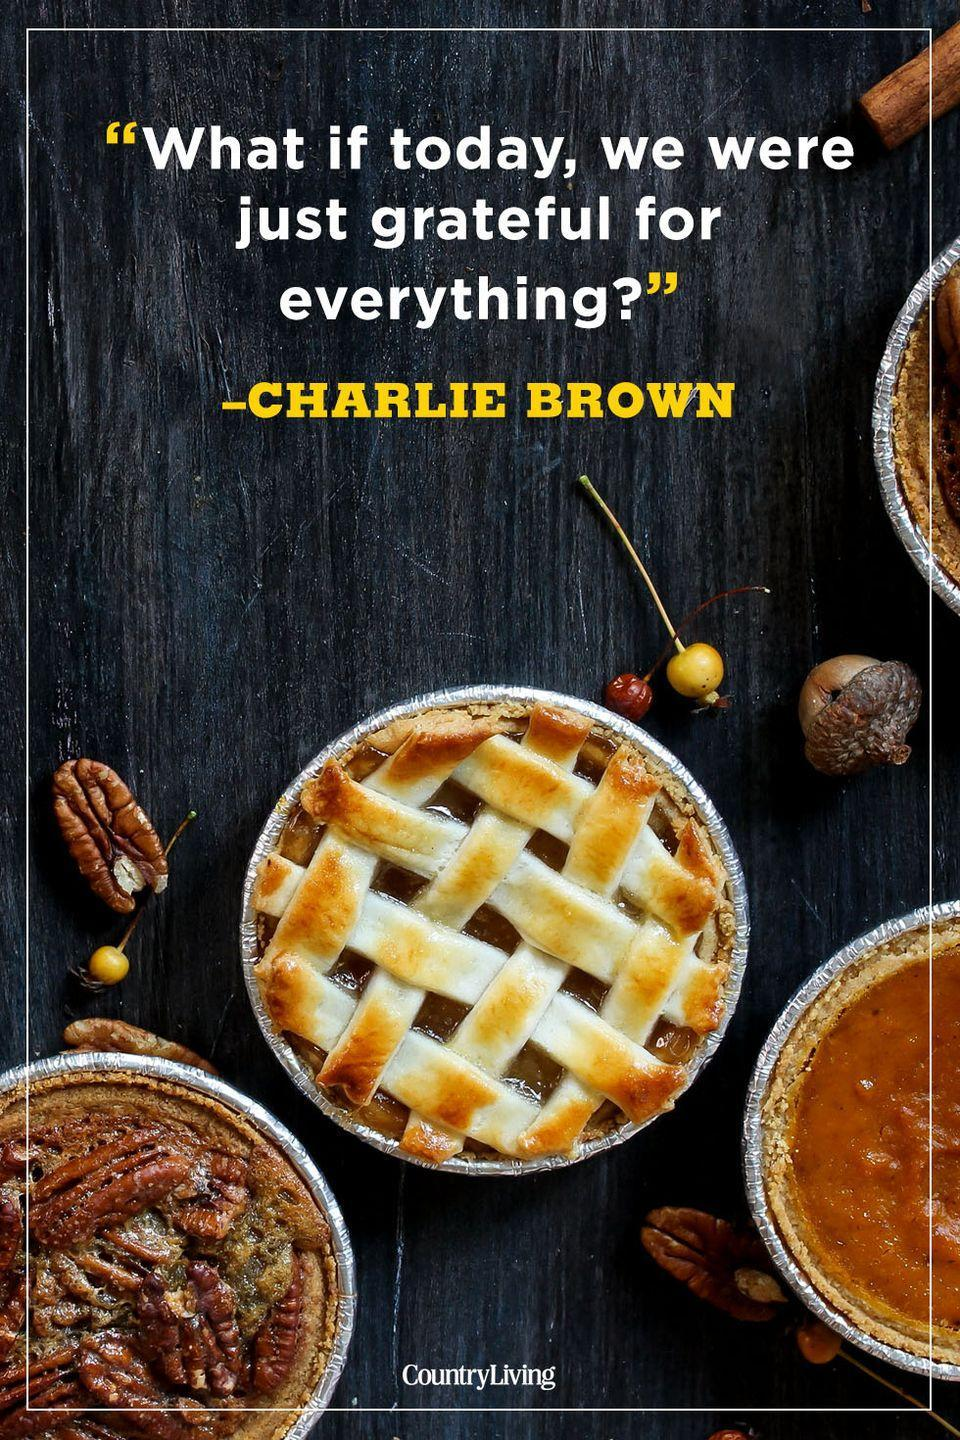 """<p>""""What if today, we were just grateful for everything?""""</p><p><strong>RELATED:</strong> <a href=""""https://www.countryliving.com/food-drinks/g22825950/funny-thanksgiving-quotes/"""" rel=""""nofollow noopener"""" target=""""_blank"""" data-ylk=""""slk:Funny Thanksgiving Quotes to Share With Friends and Family"""" class=""""link rapid-noclick-resp"""">Funny Thanksgiving Quotes to Share With Friends and Family</a></p>"""